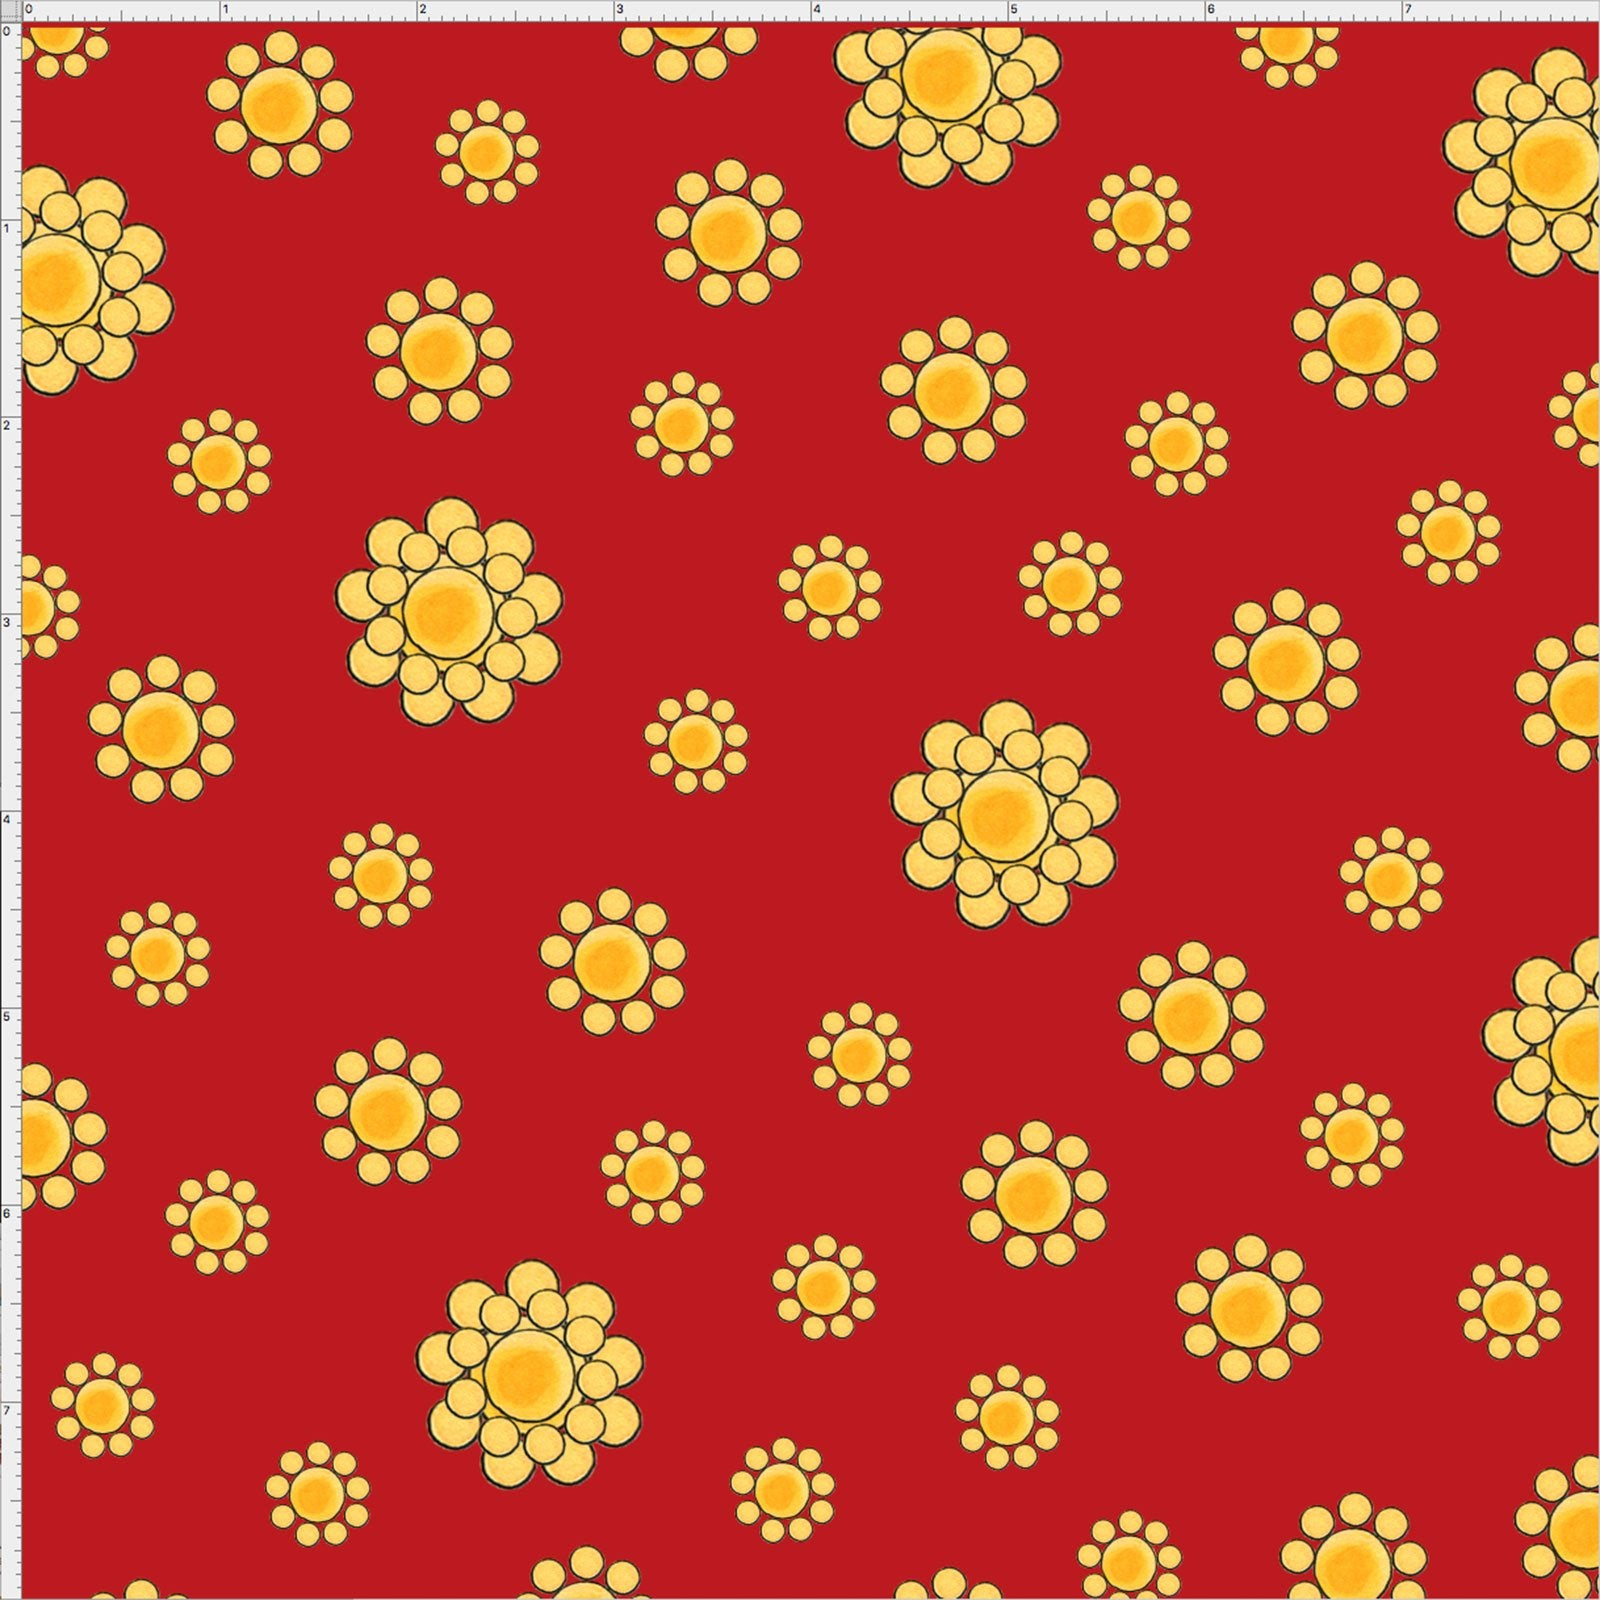 Whoa Girl! - Flowers on Red - Fat Quarter